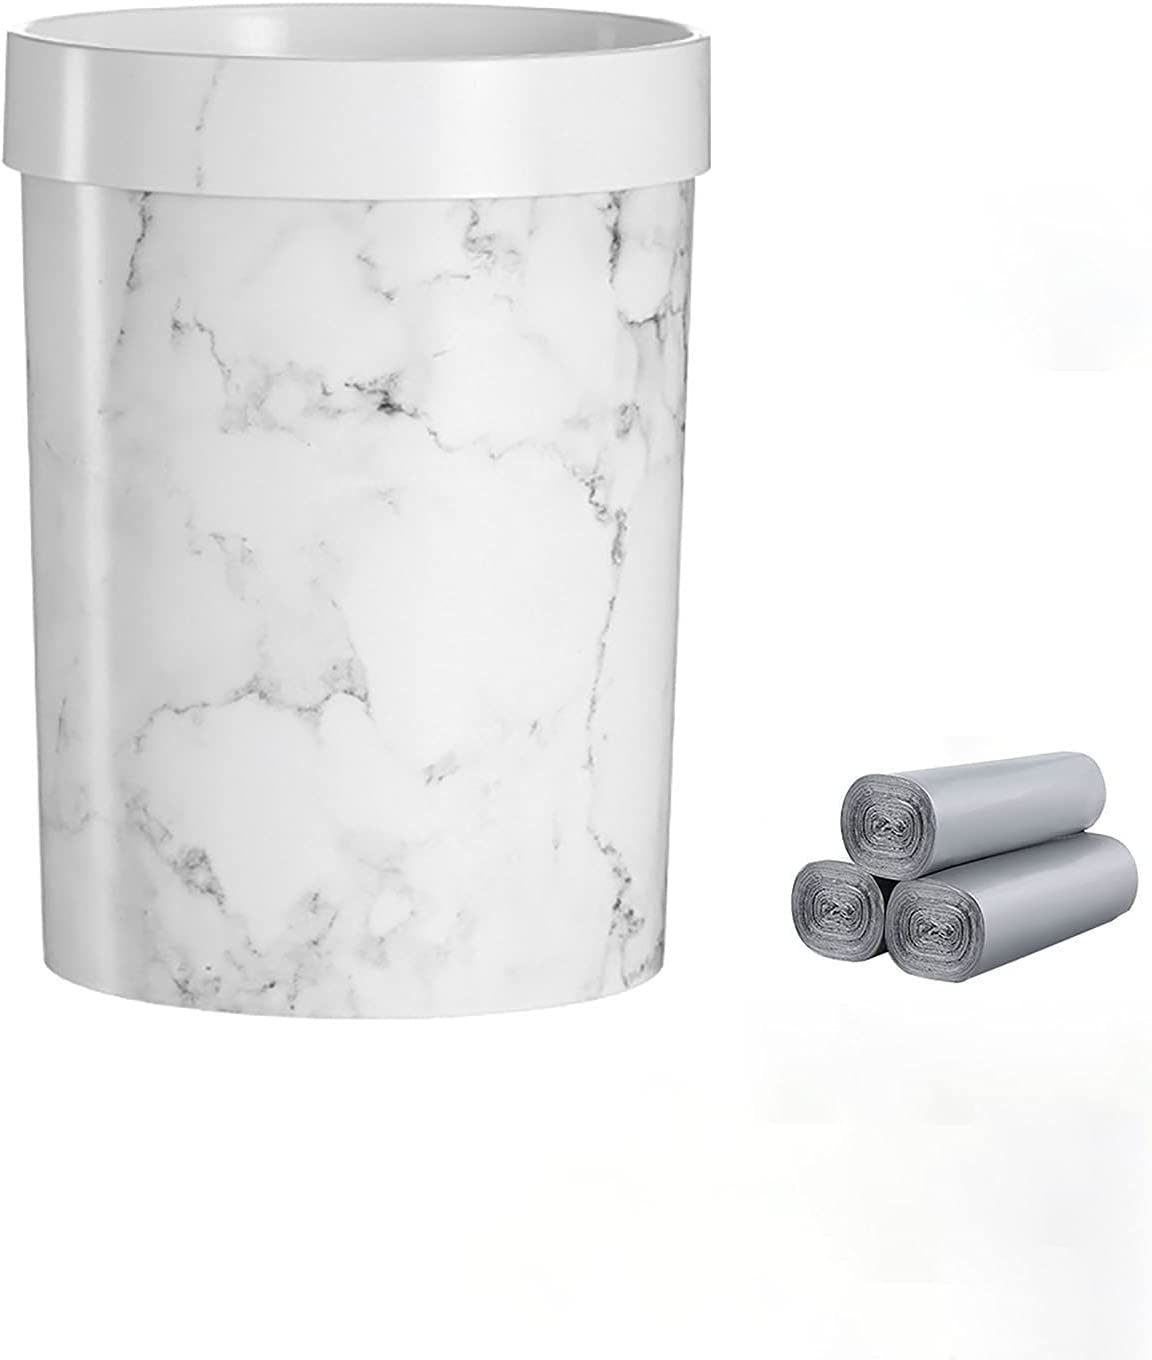 Trash shopping Can Price reduction Bathroom Marble Light Household